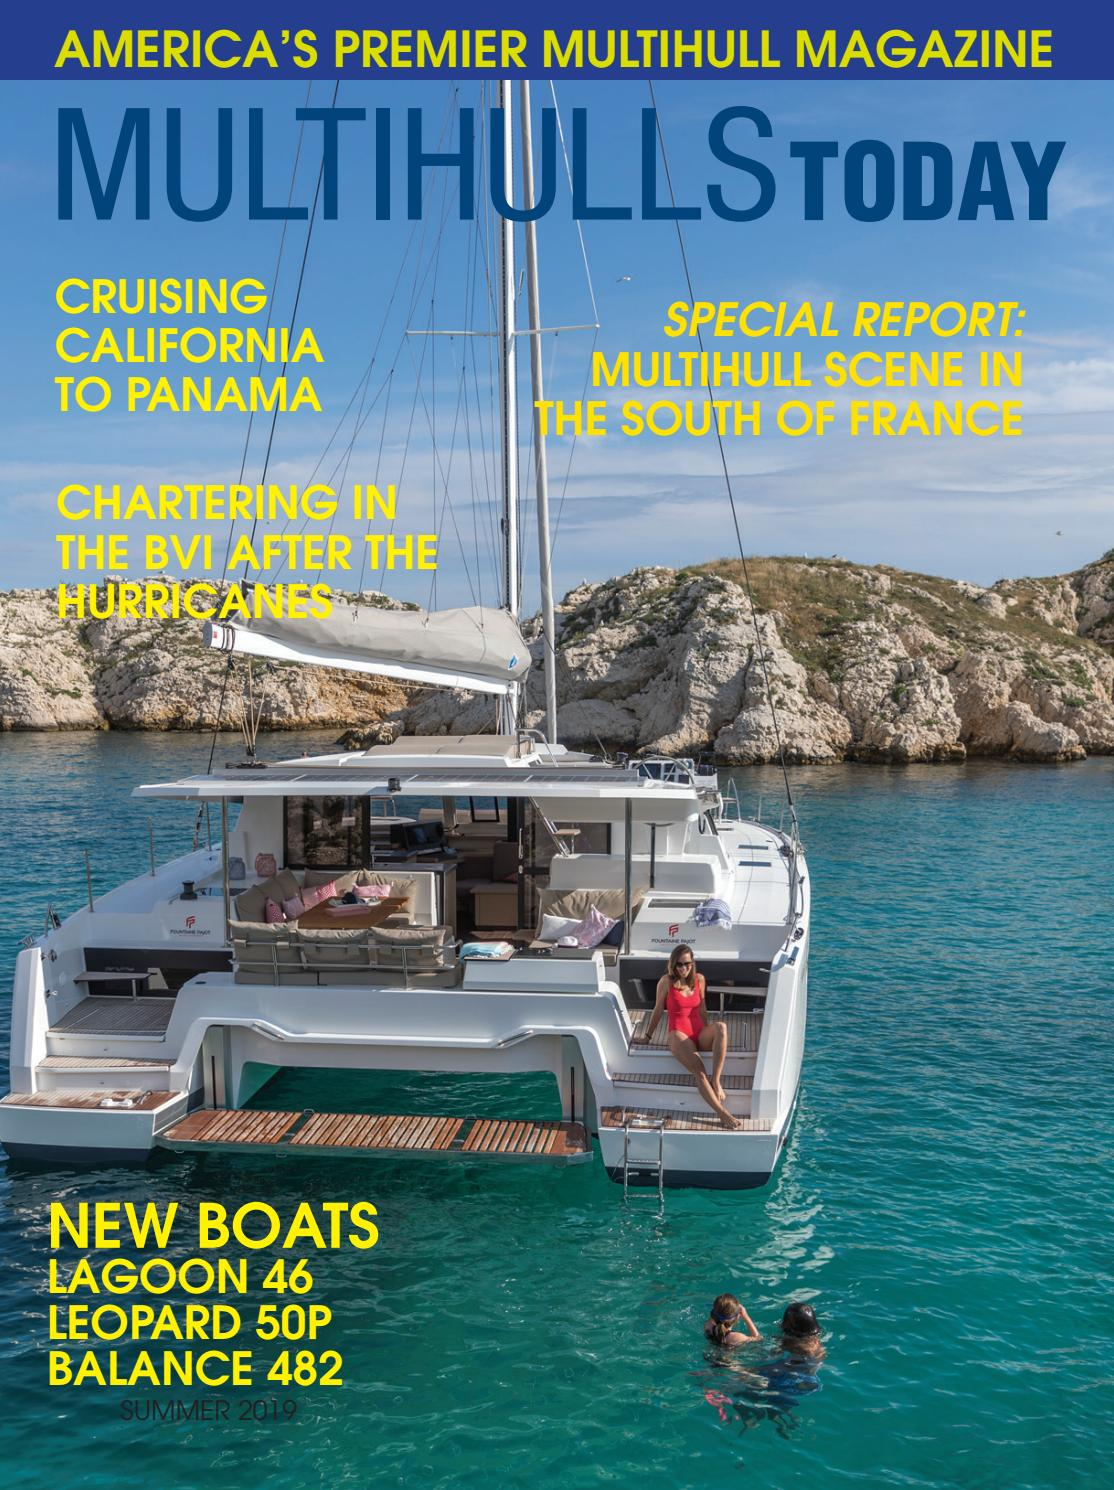 Multihulls Today Summer 2019 by Blue Water Sailing - issuu